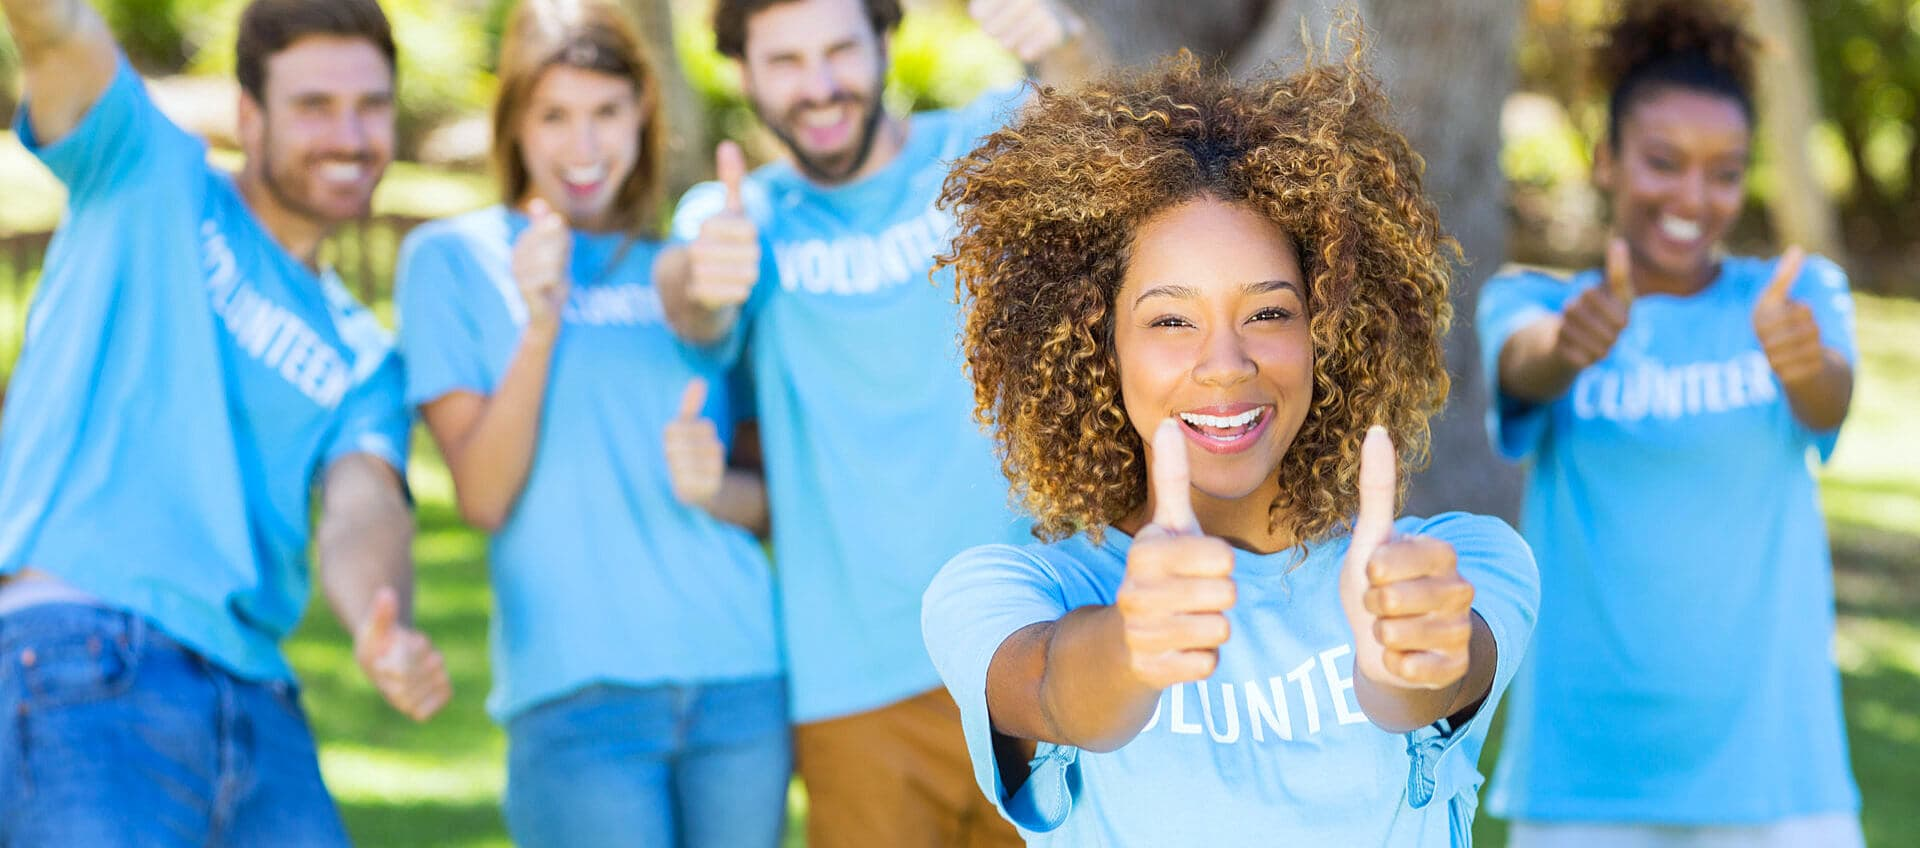 group of volunteers showing a thumbs up